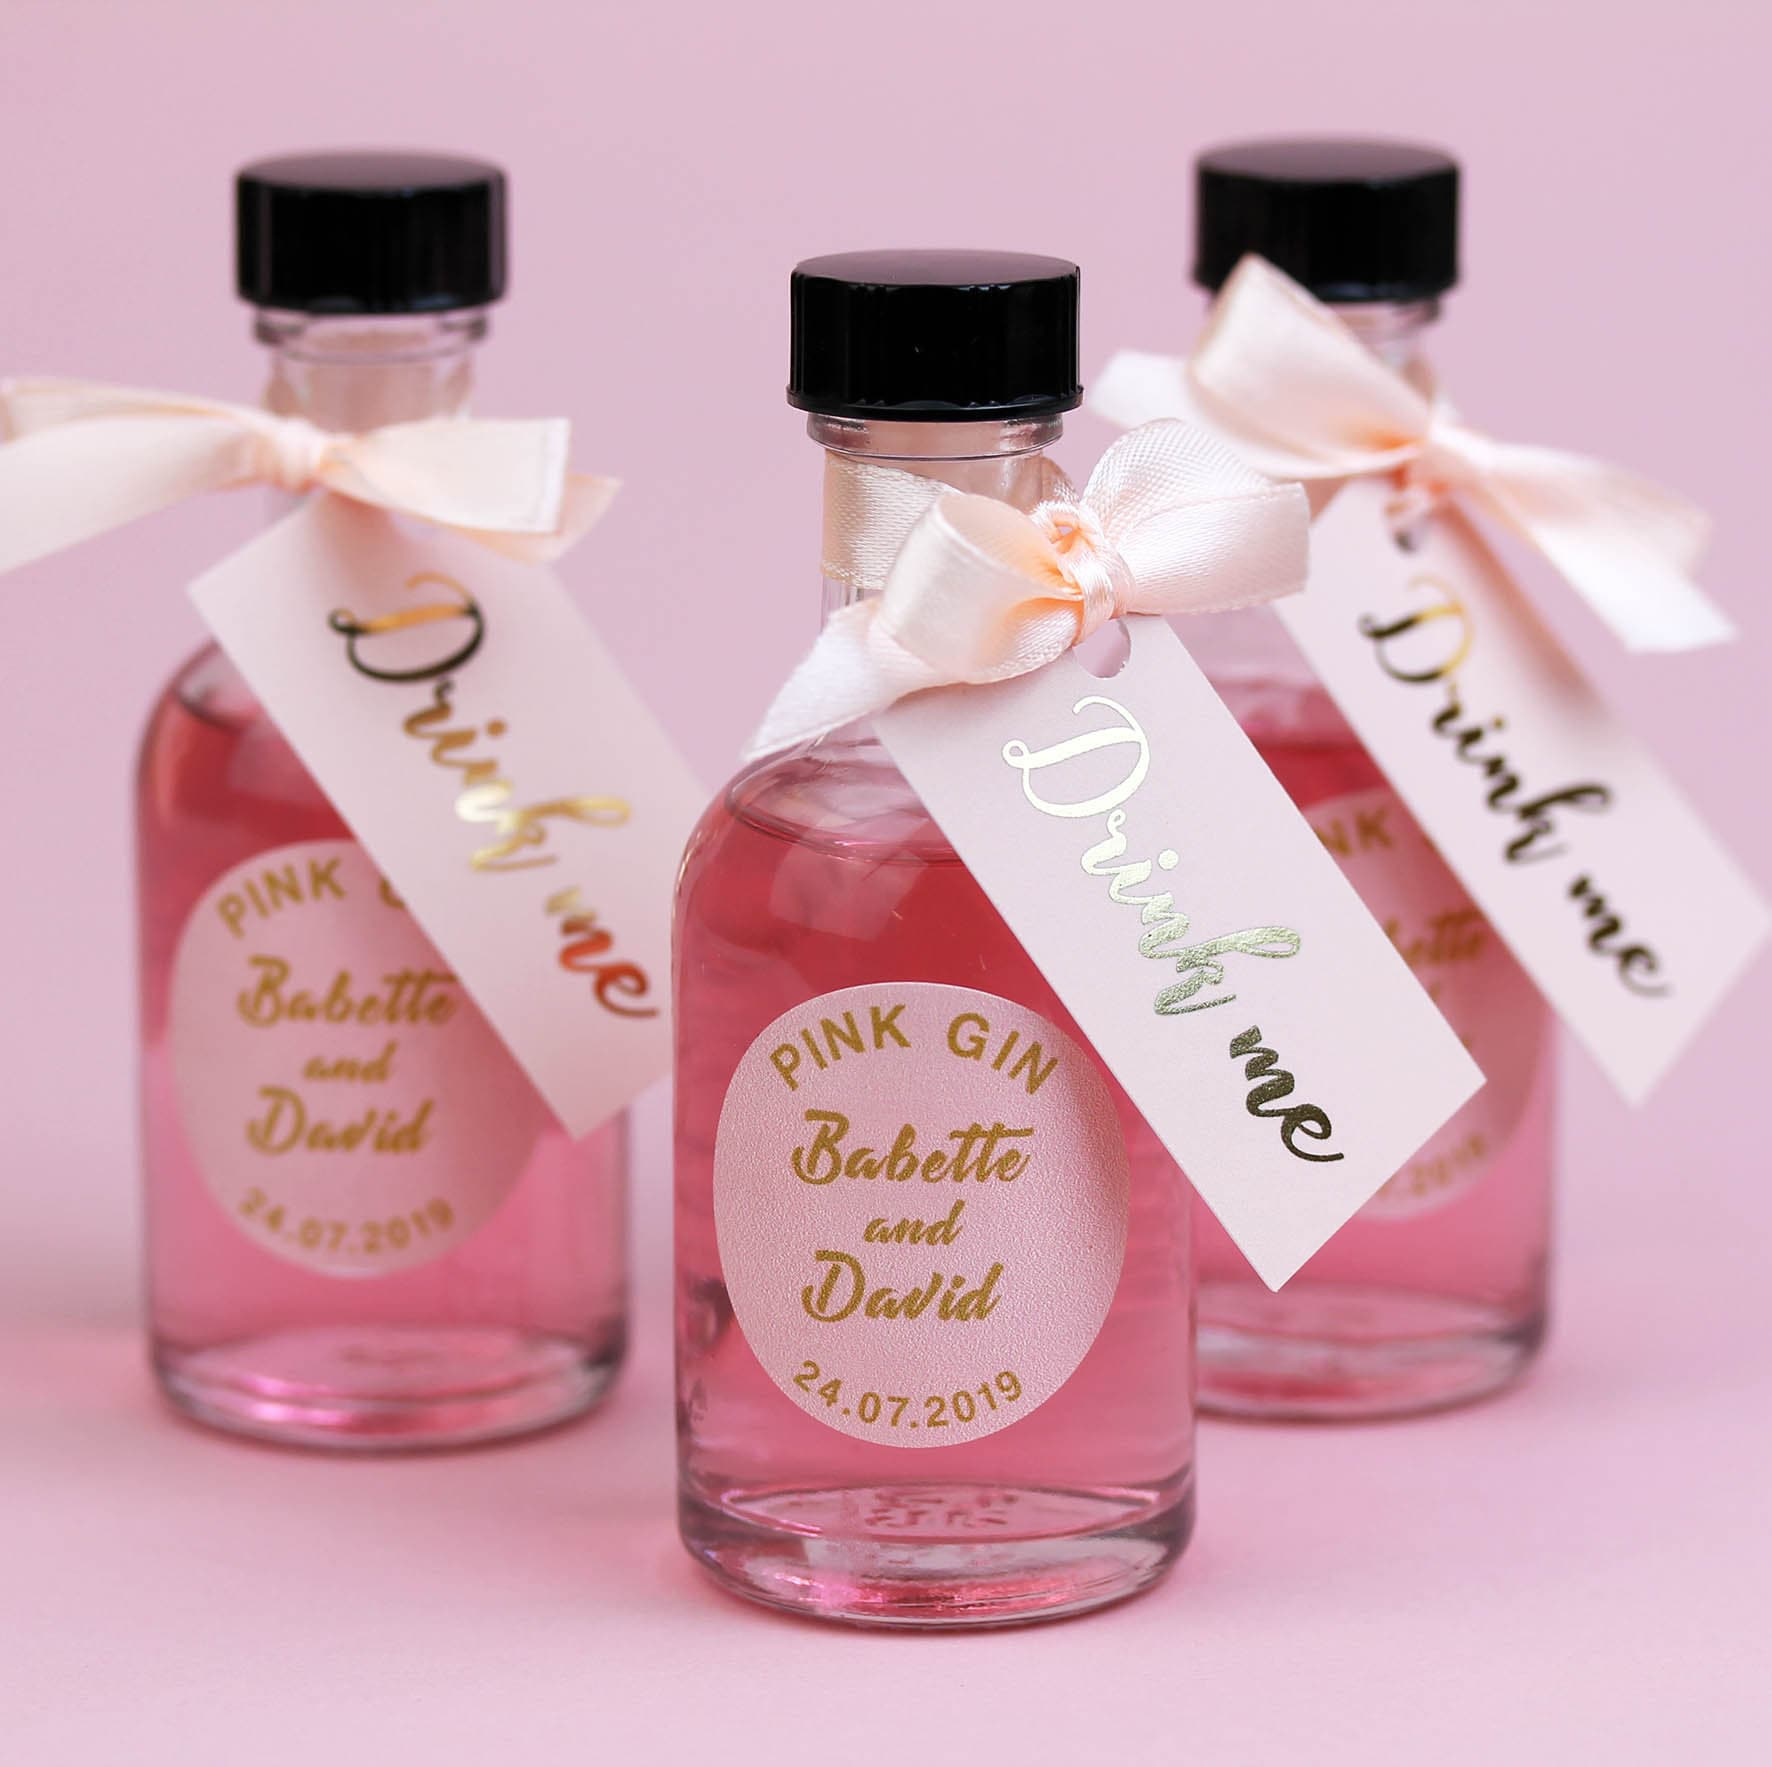 Blush and Gold Wedding Favours for Pink Gin miniature bottles | Etsy